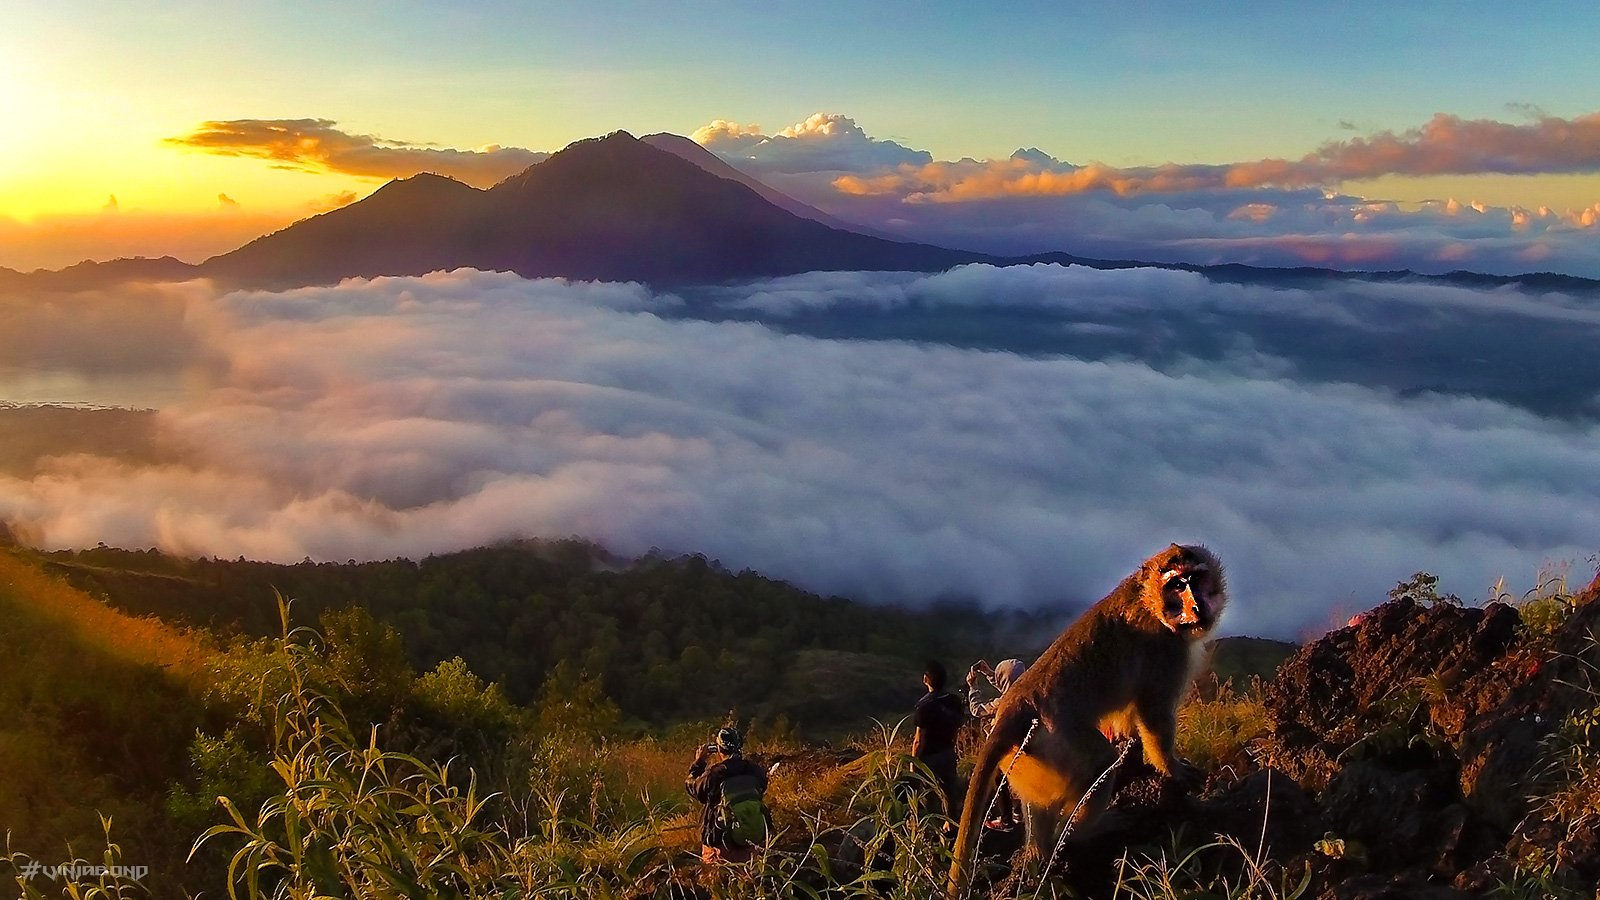 Curious Monkey on Mount Batur /// Vinjabond